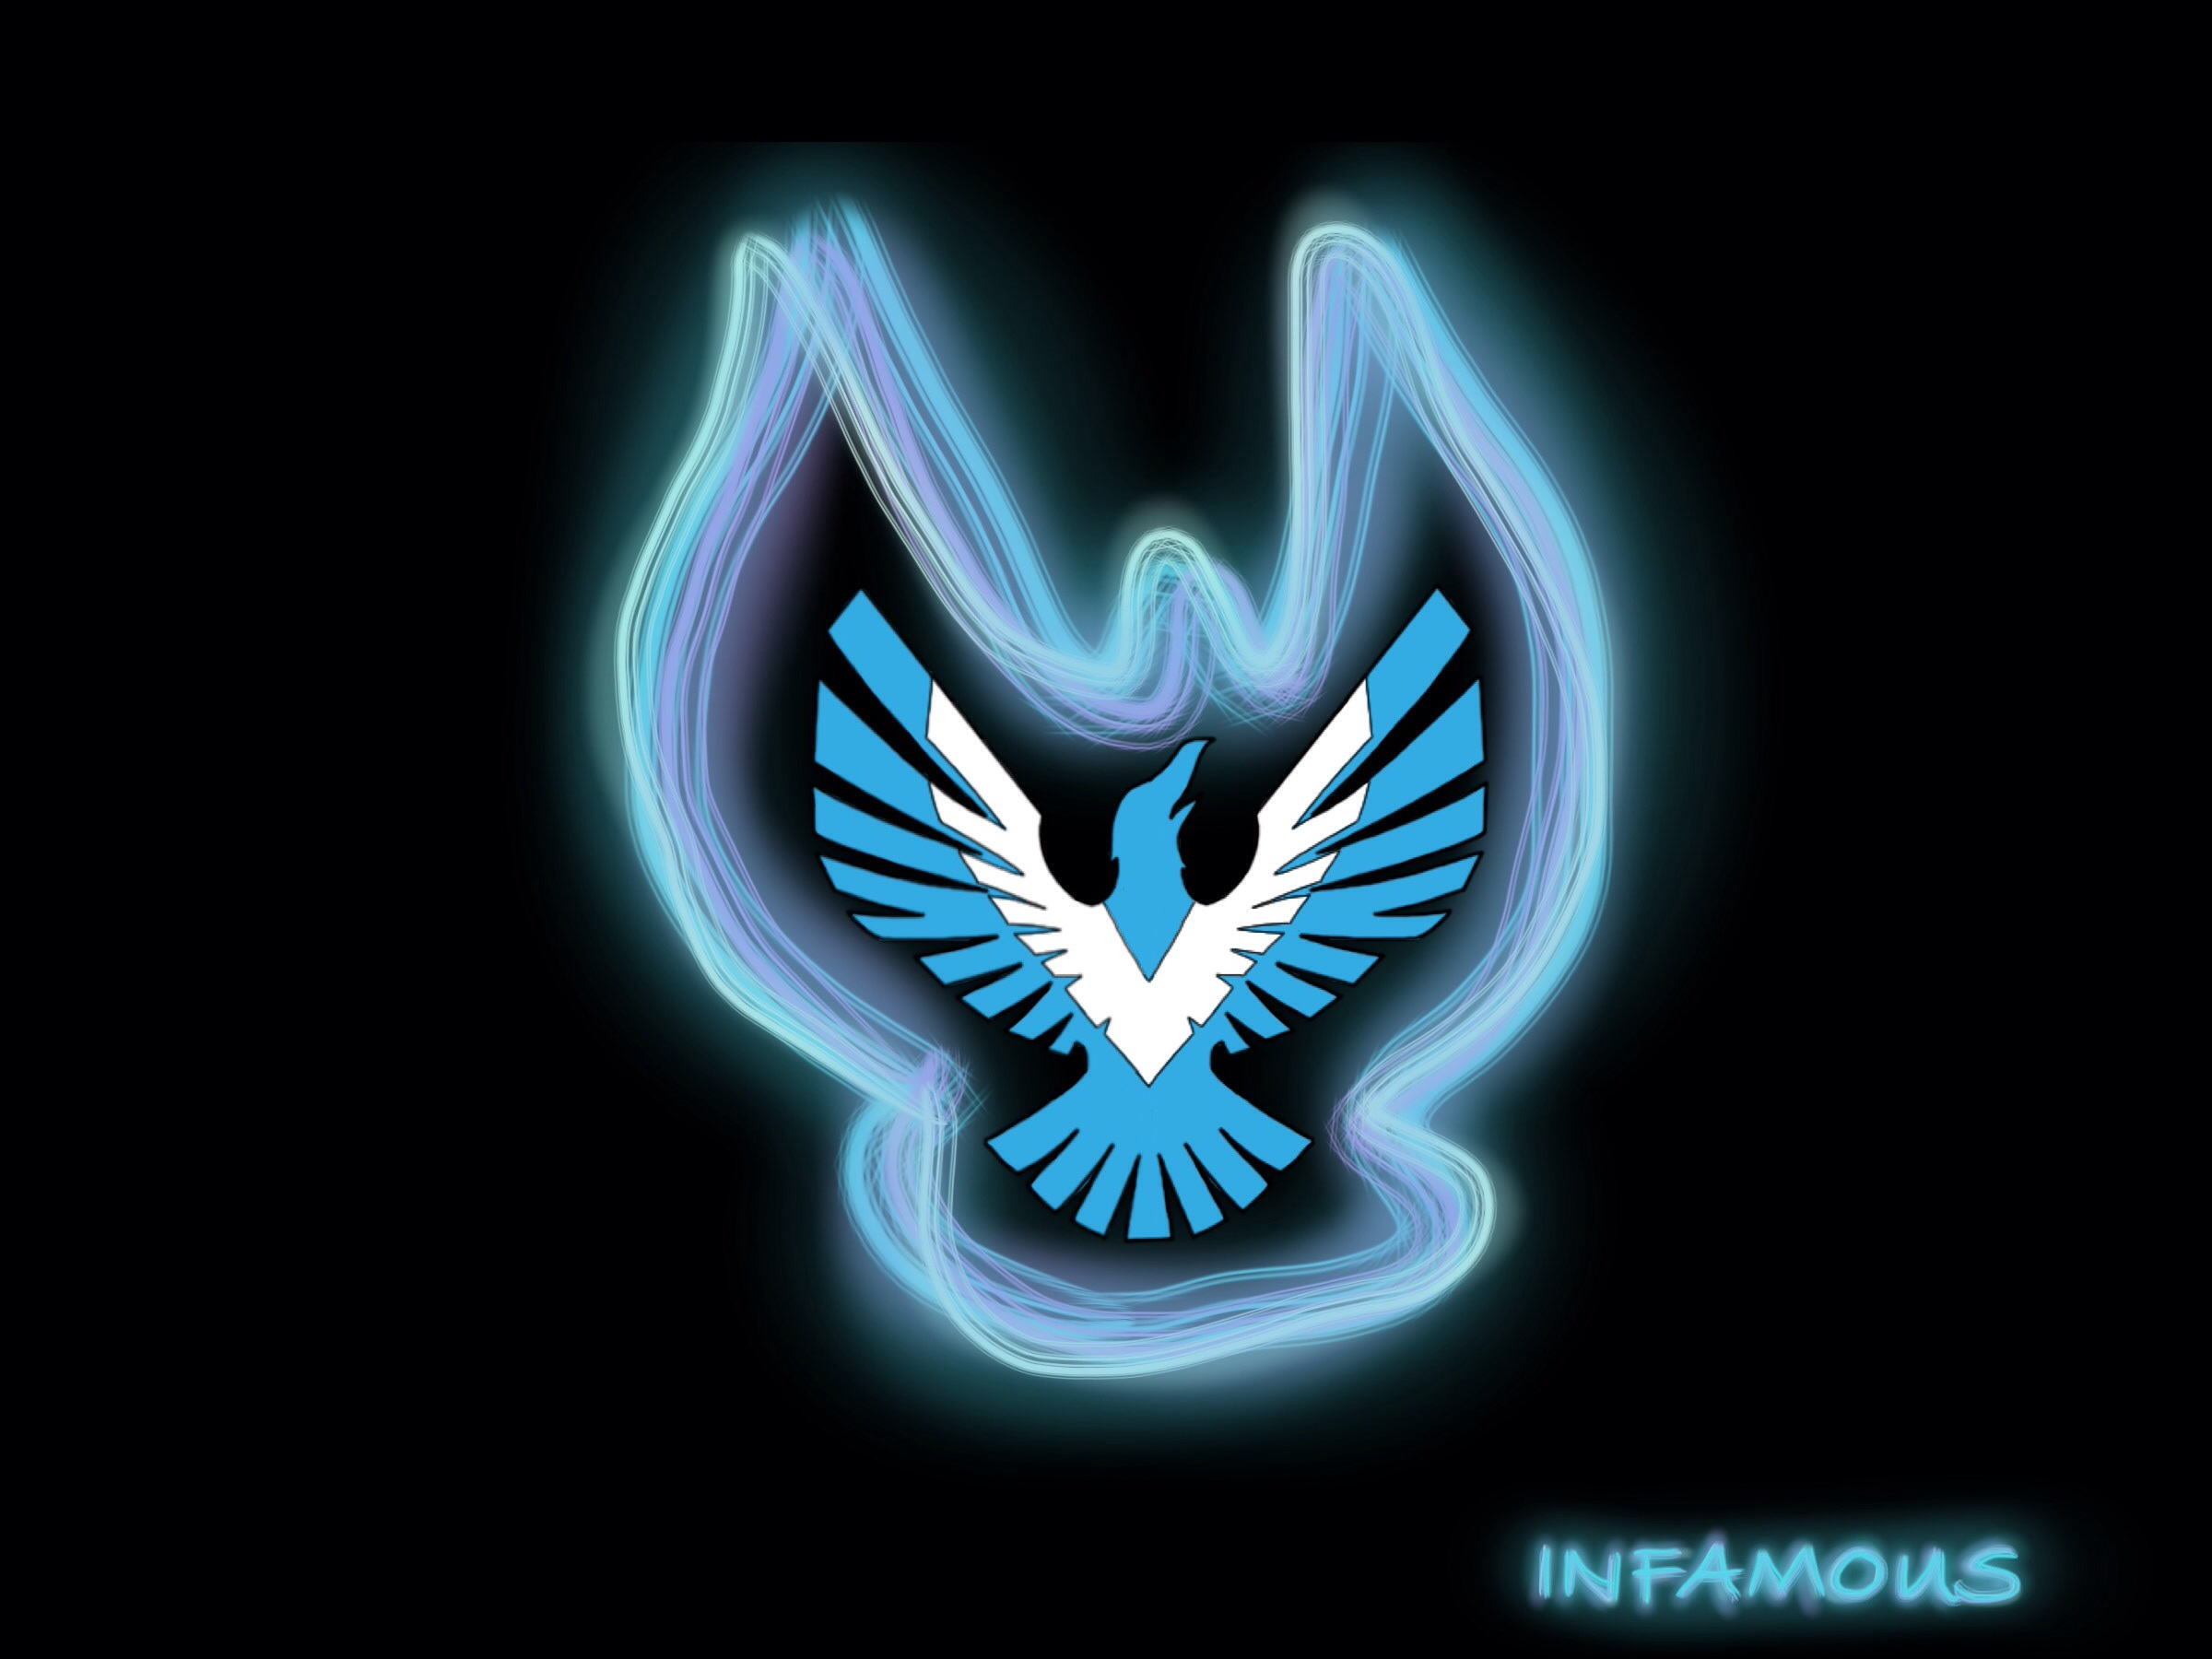 Infamous Second Son Good Route Wallpaper By Anonymousavox On